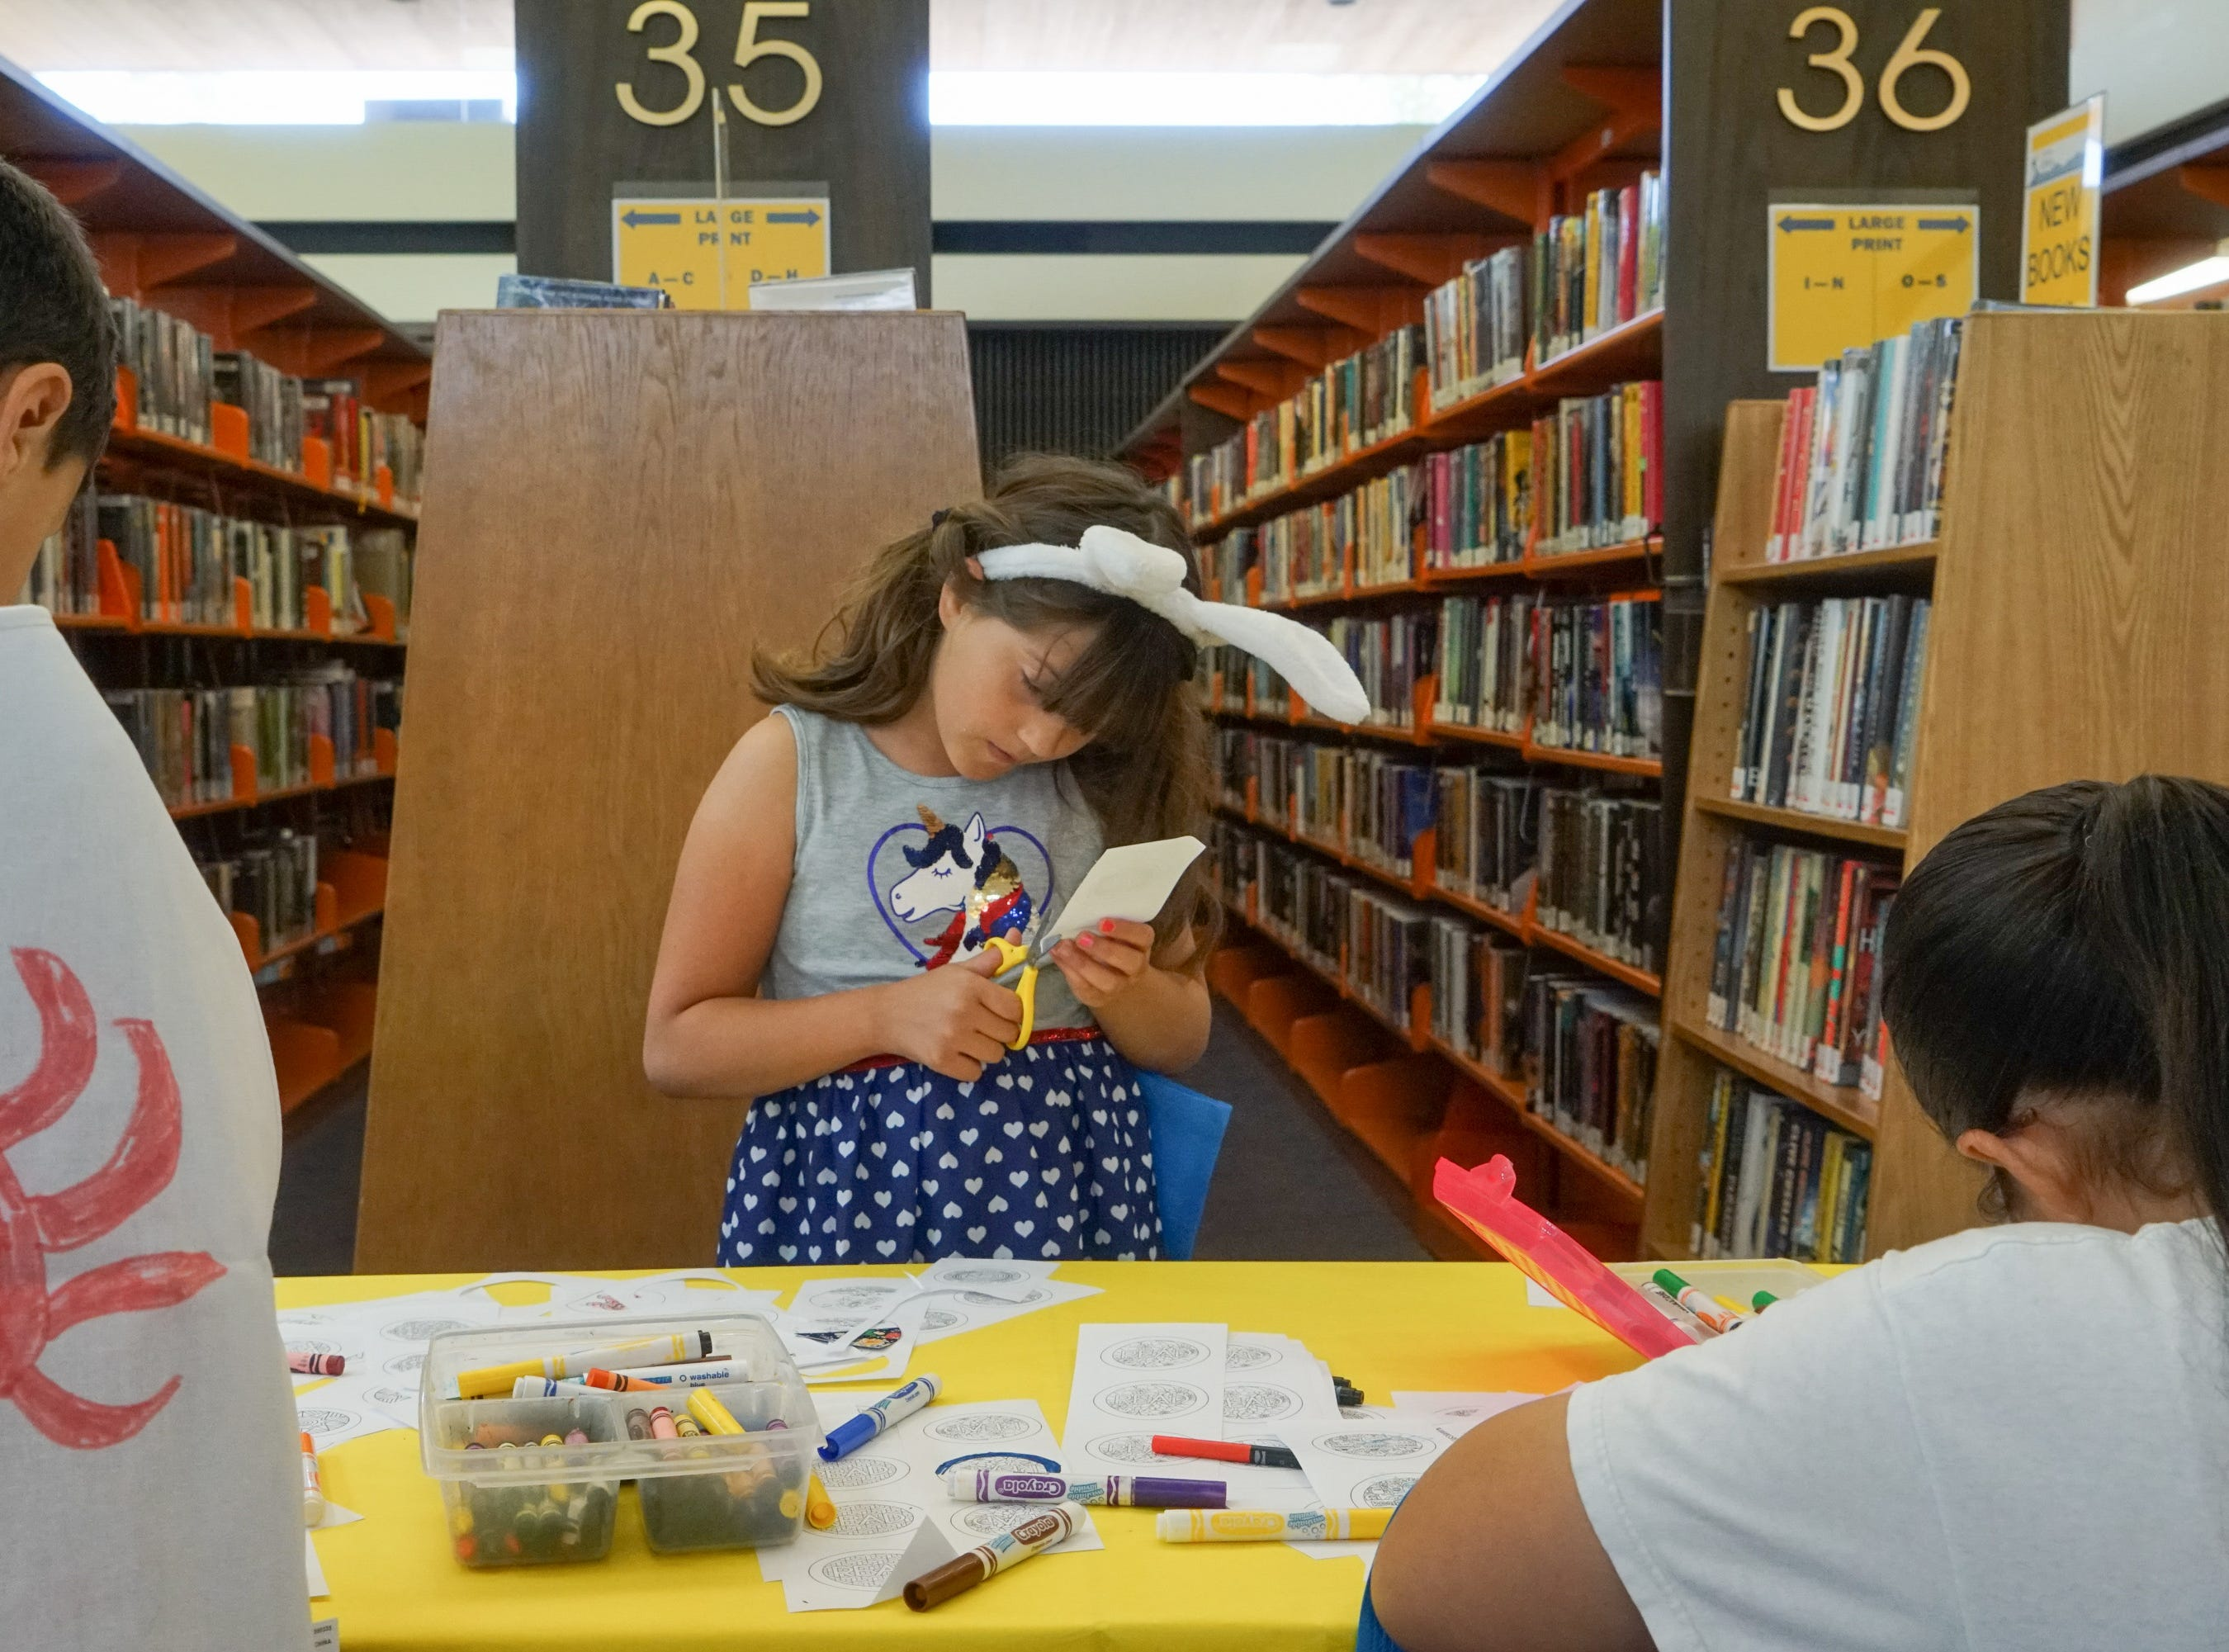 Kids make their own buttons at an activity table at the Palm Springs Public Library Comic Con, Palm Springs, Calif., May 11, 2019.